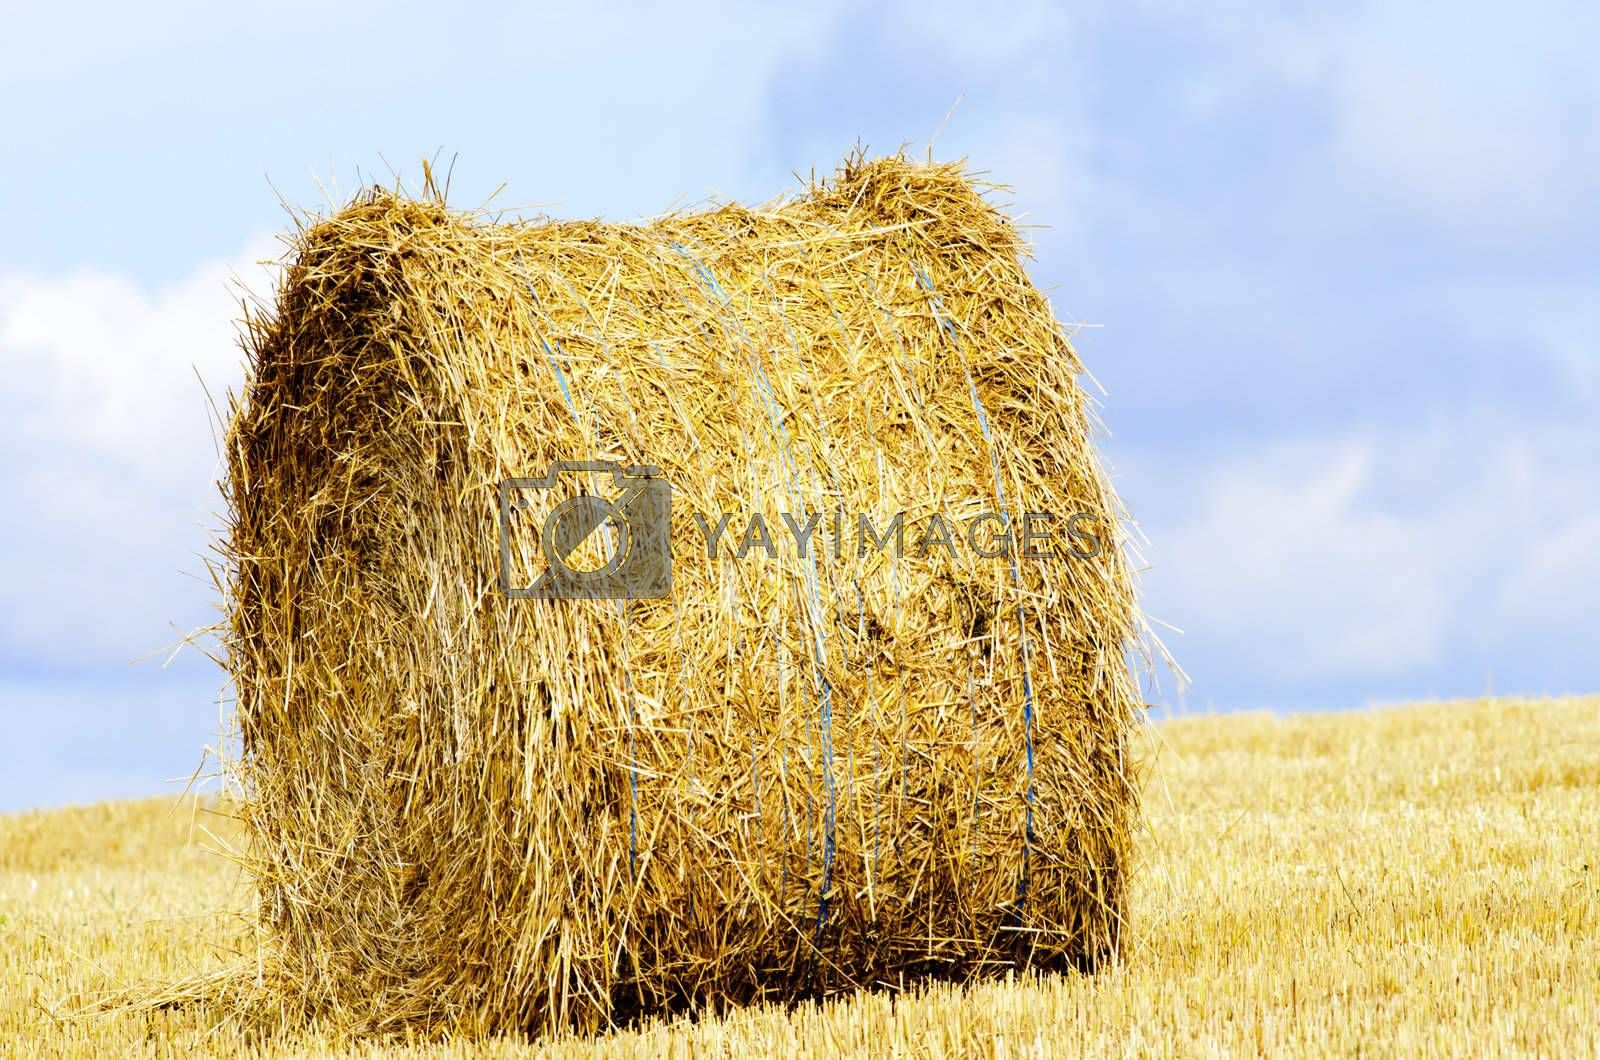 straw roll in a harvested field